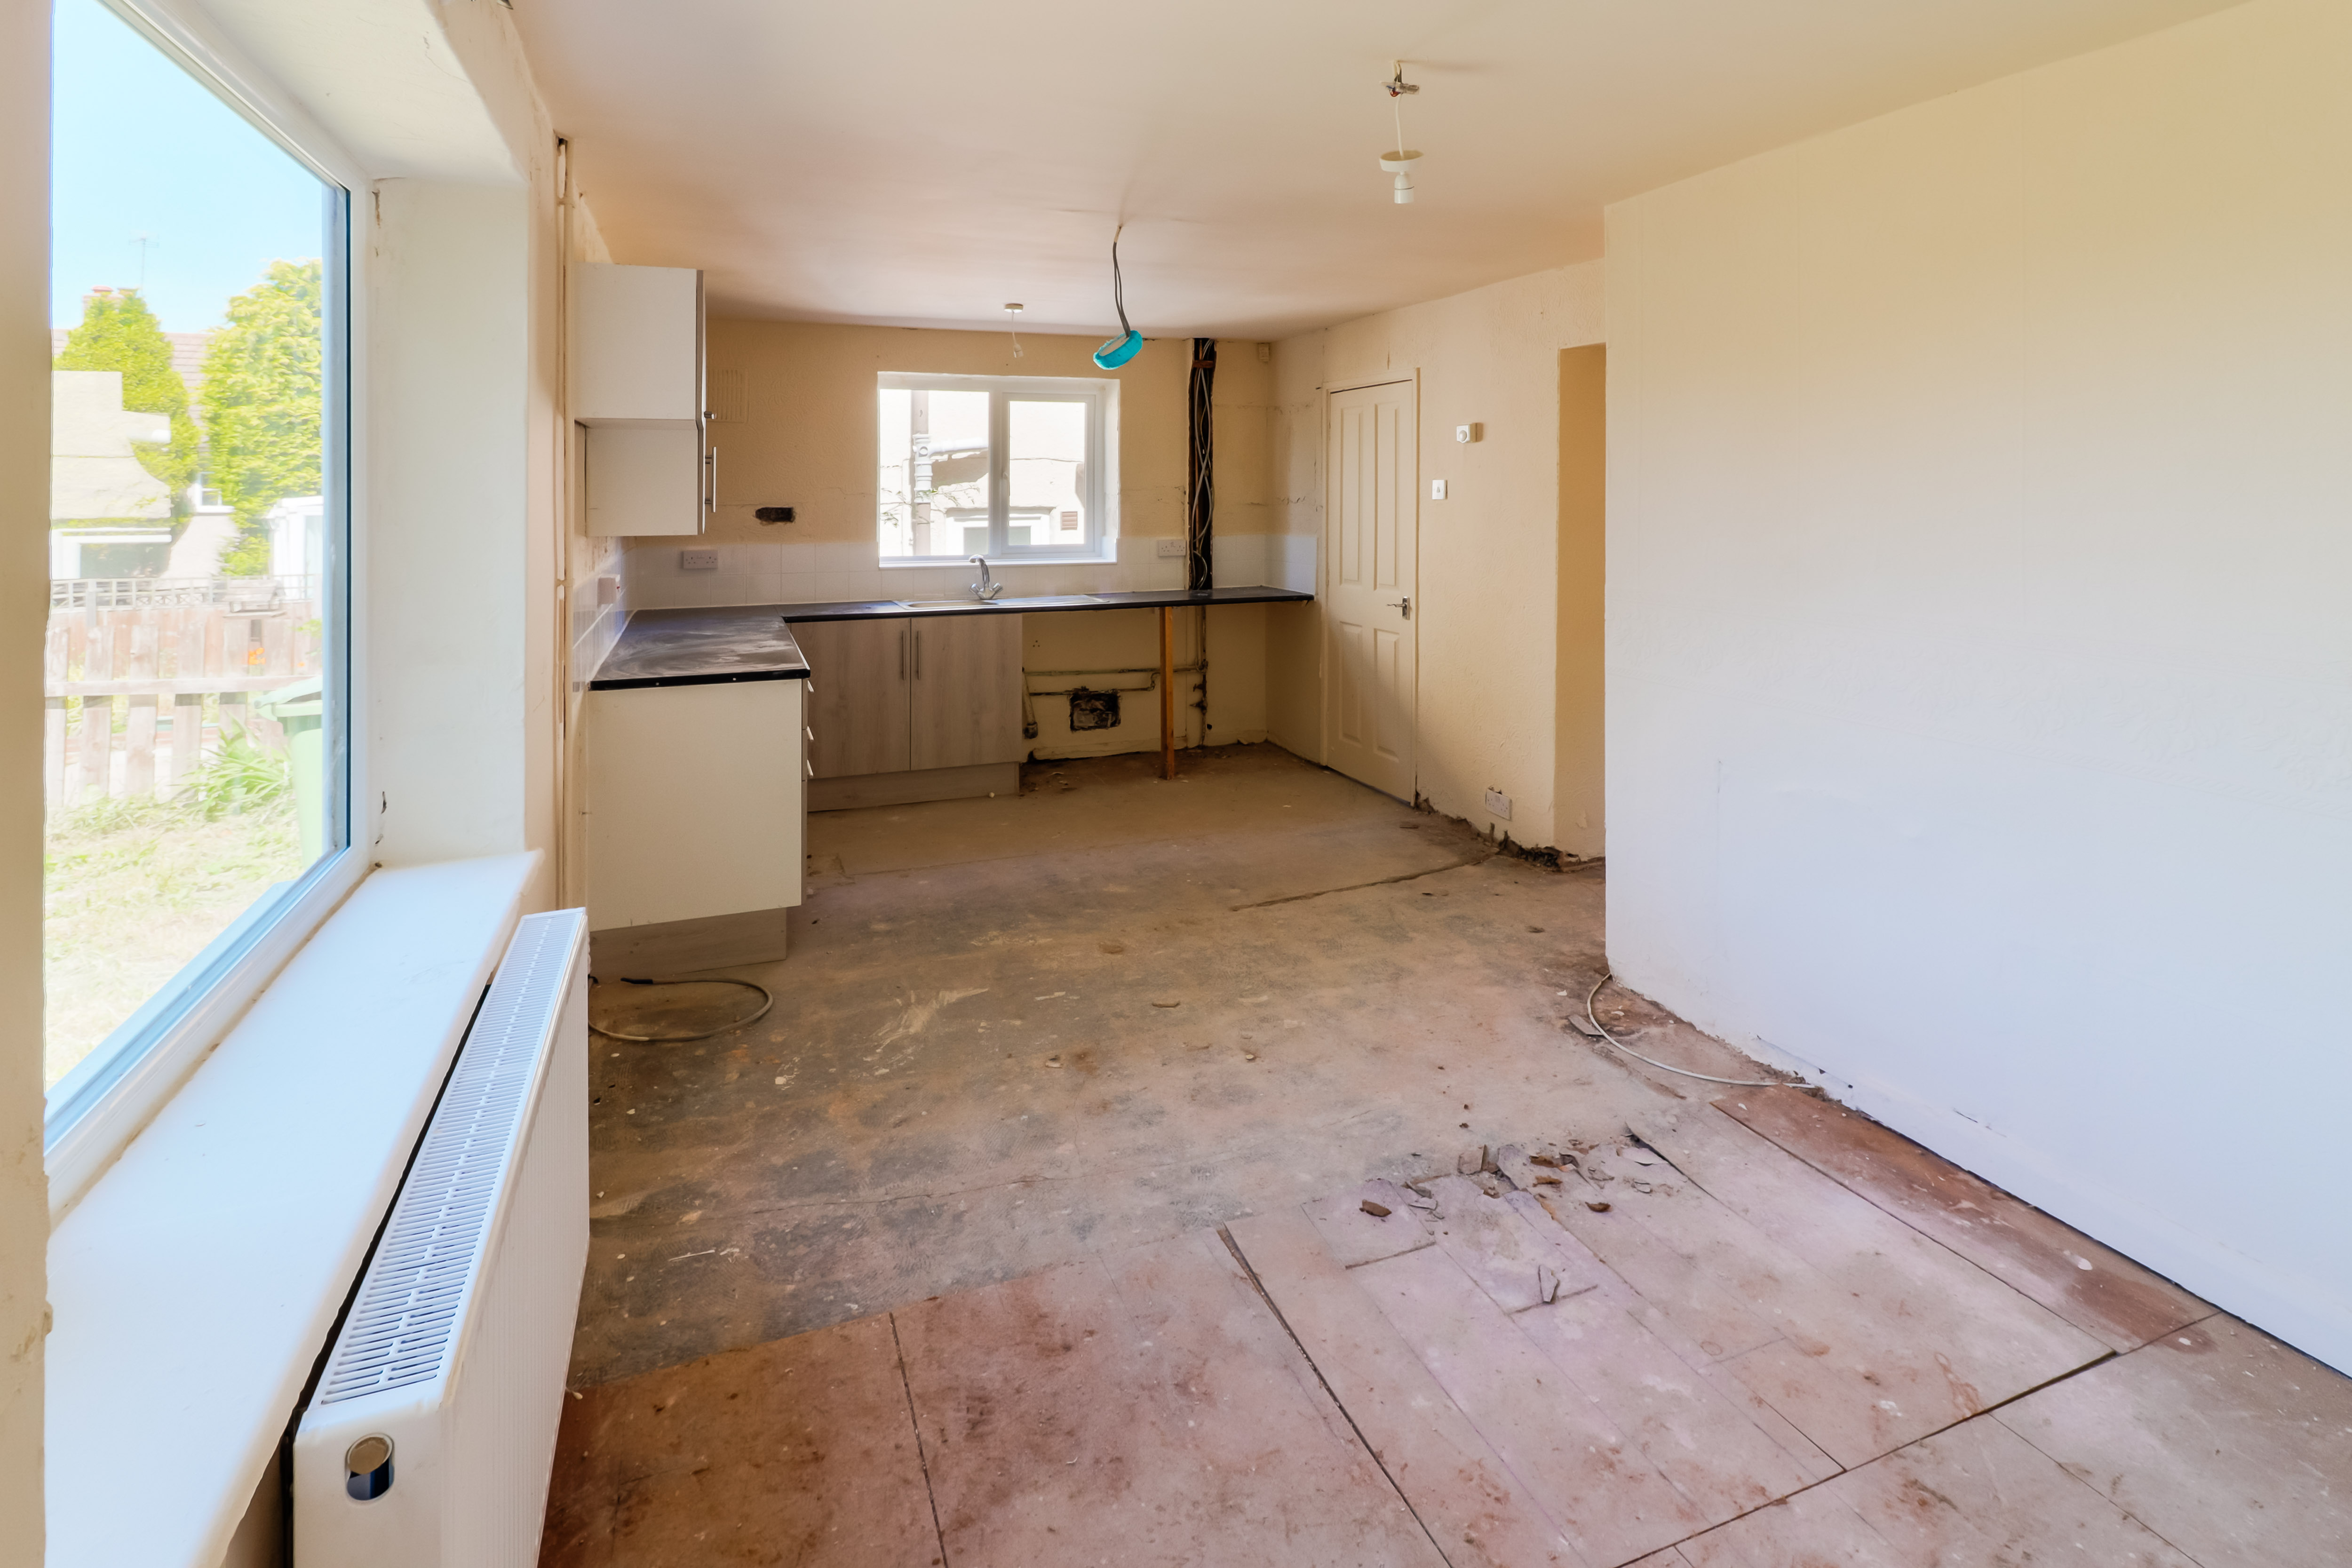 Semi-detached house for sale in Houfton Road, Chesterfield, S44 from ...